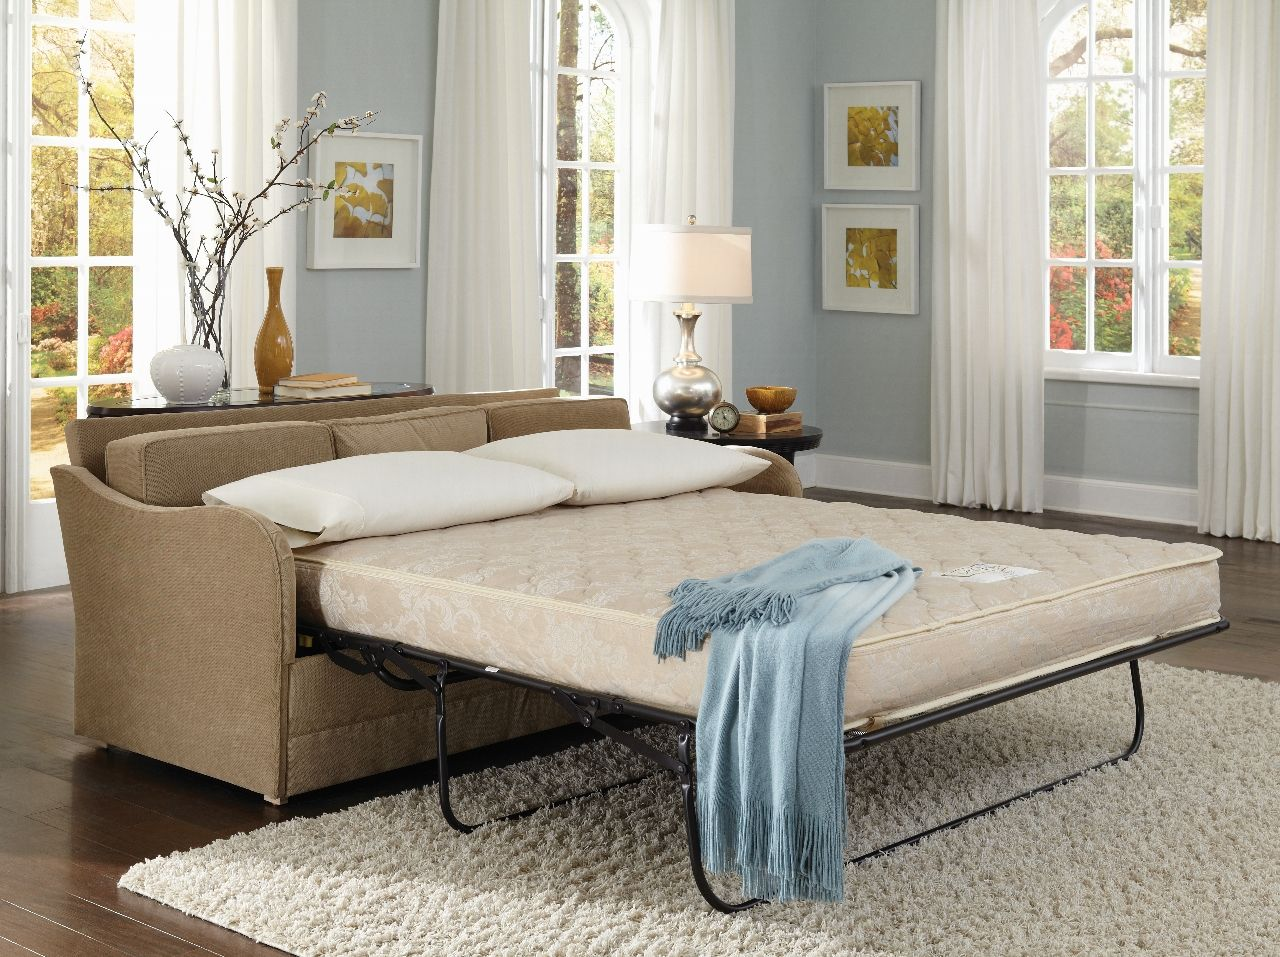 Timothy Pull Out Sofa Bed Available in Full and Queen Mattress